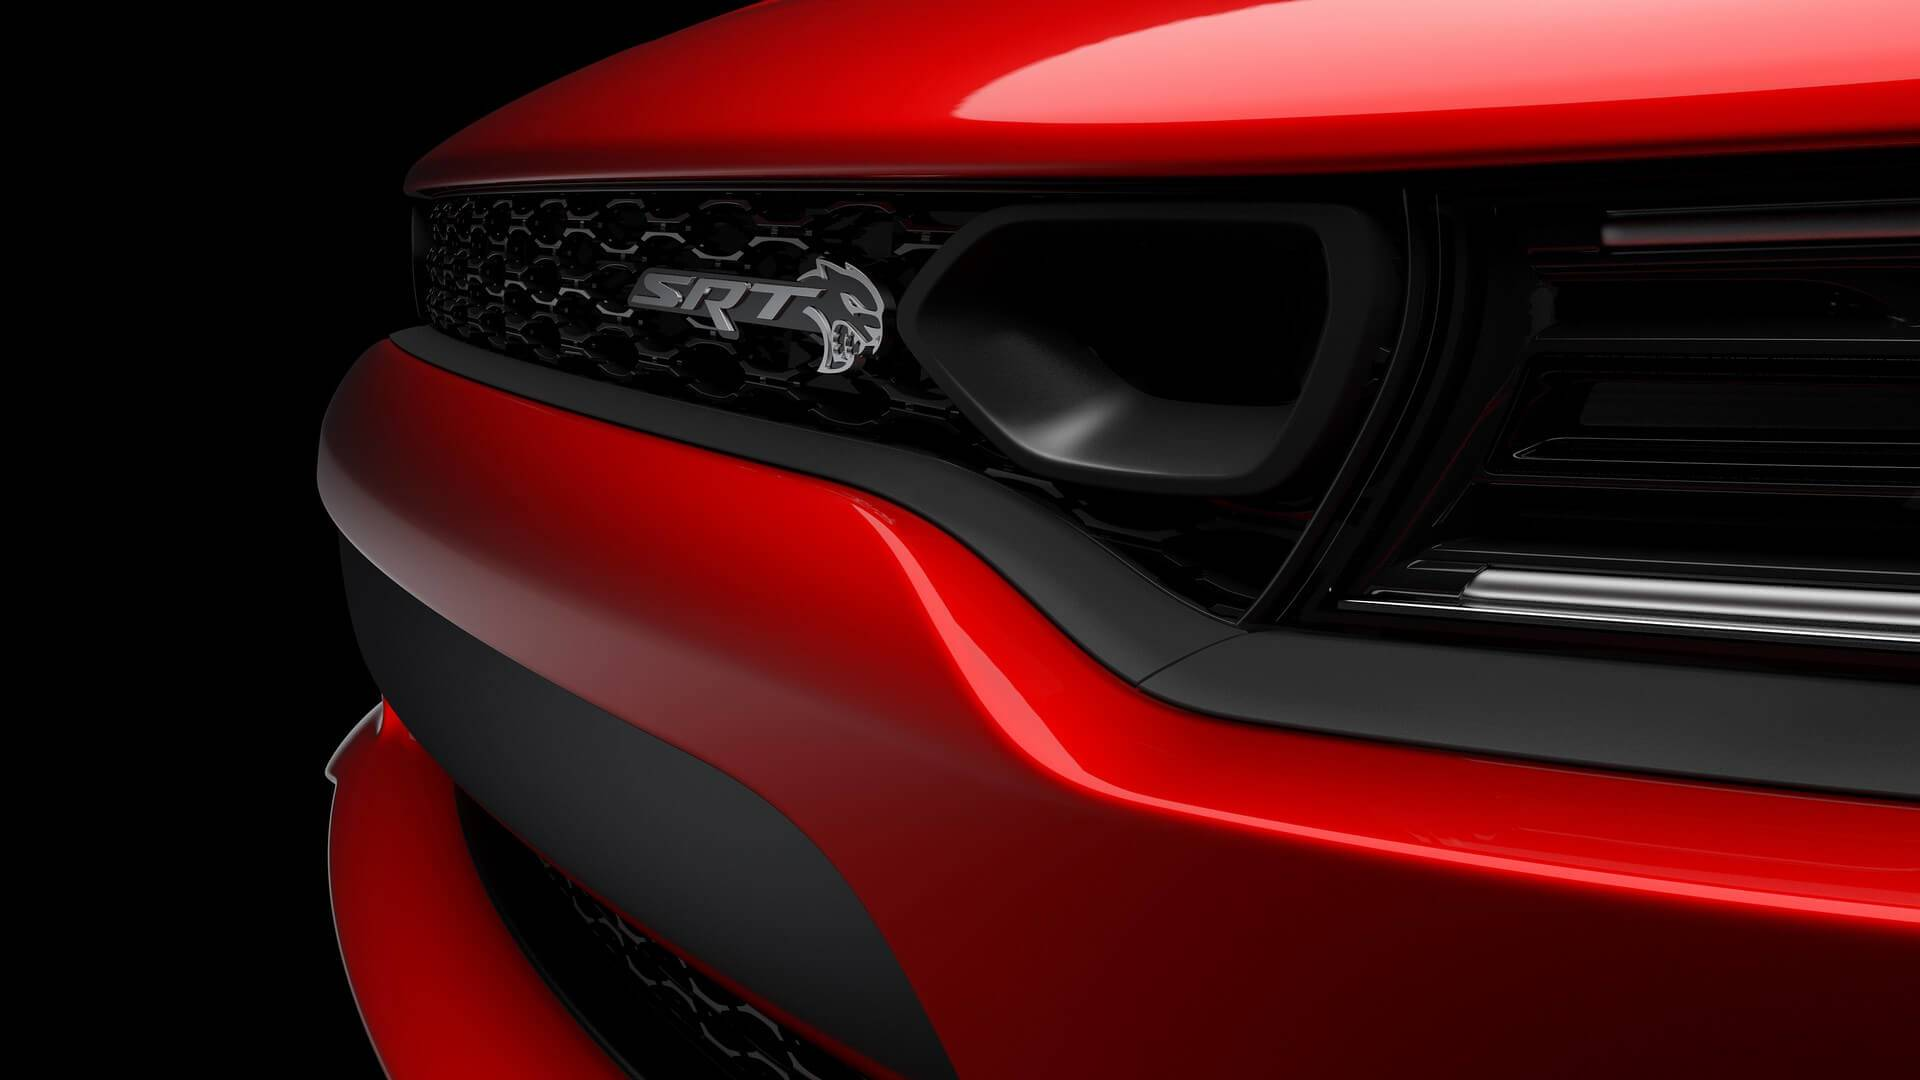 2019 Dodge Charger Srt Hellcat Teases Its All New Front Grille